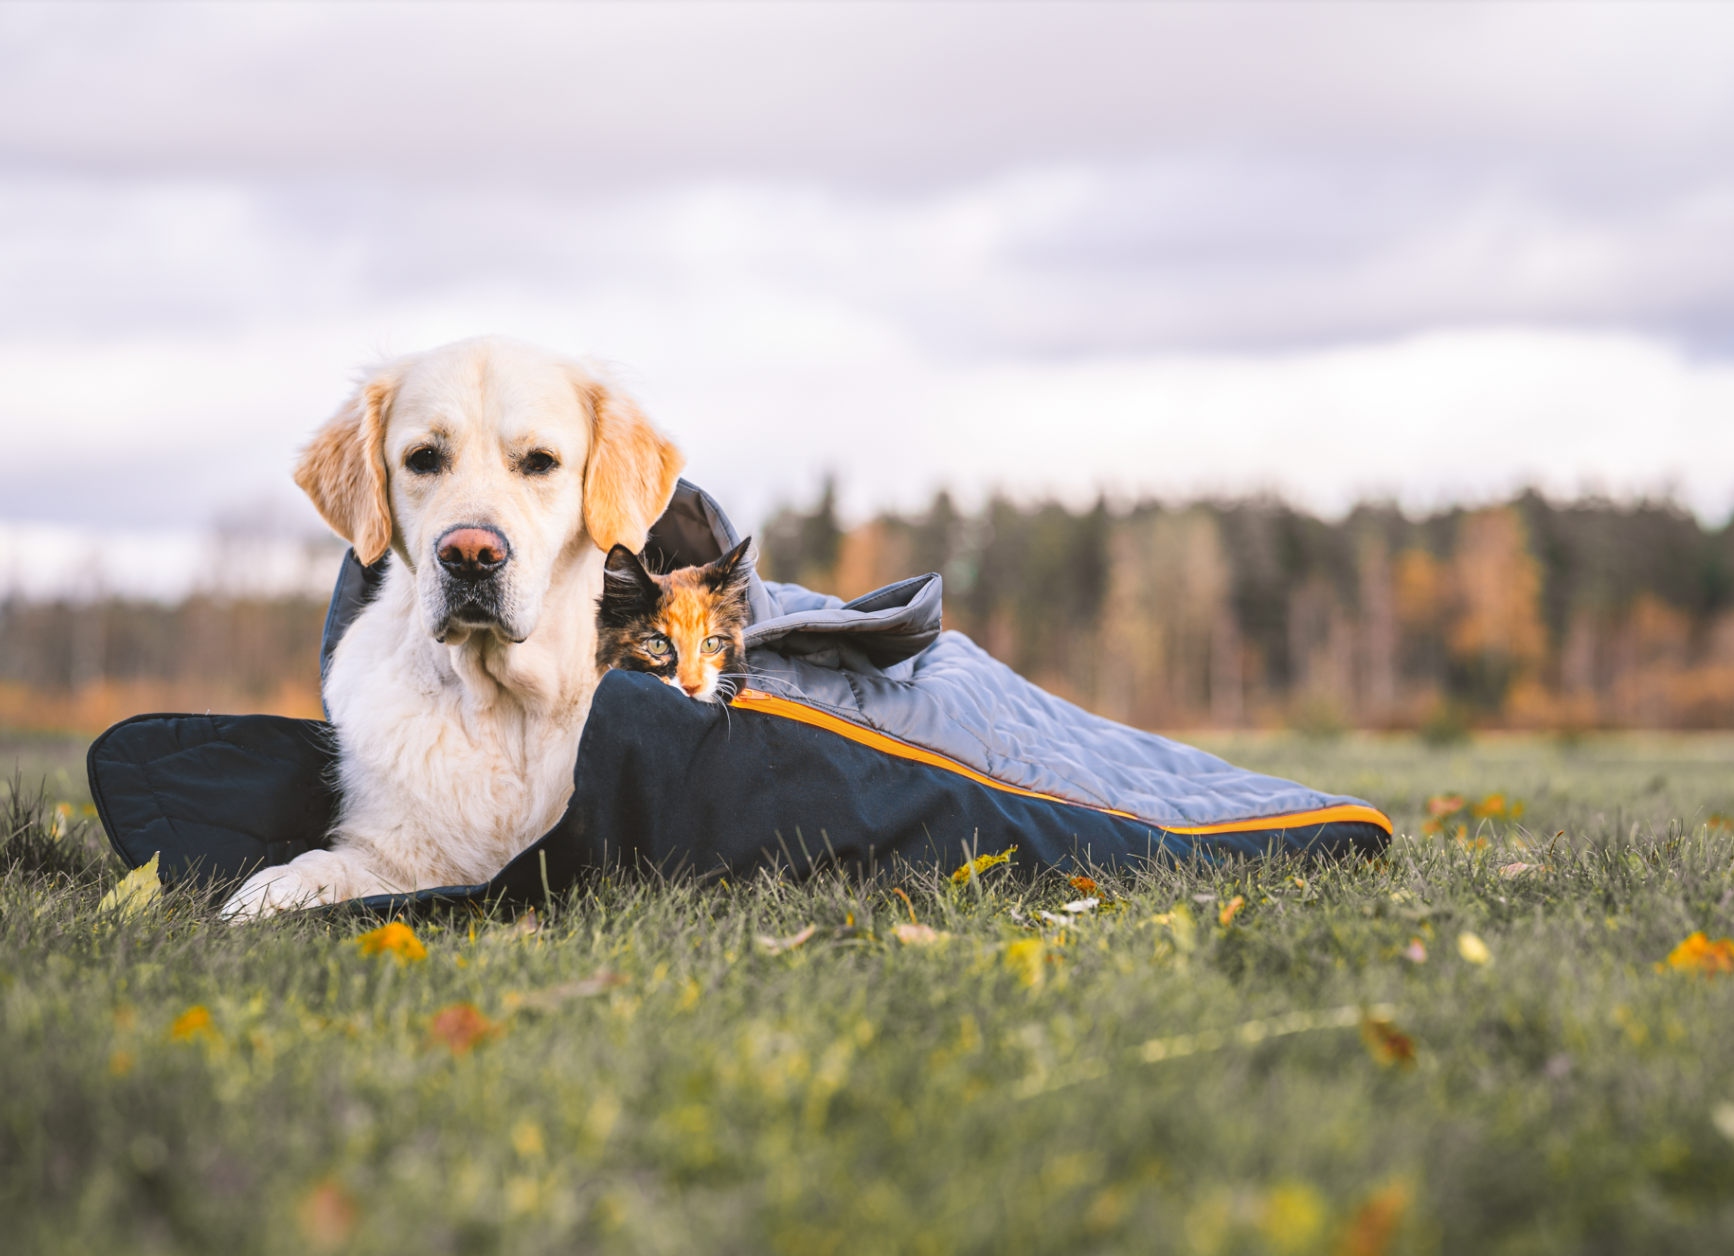 Hiking and travelling with pets